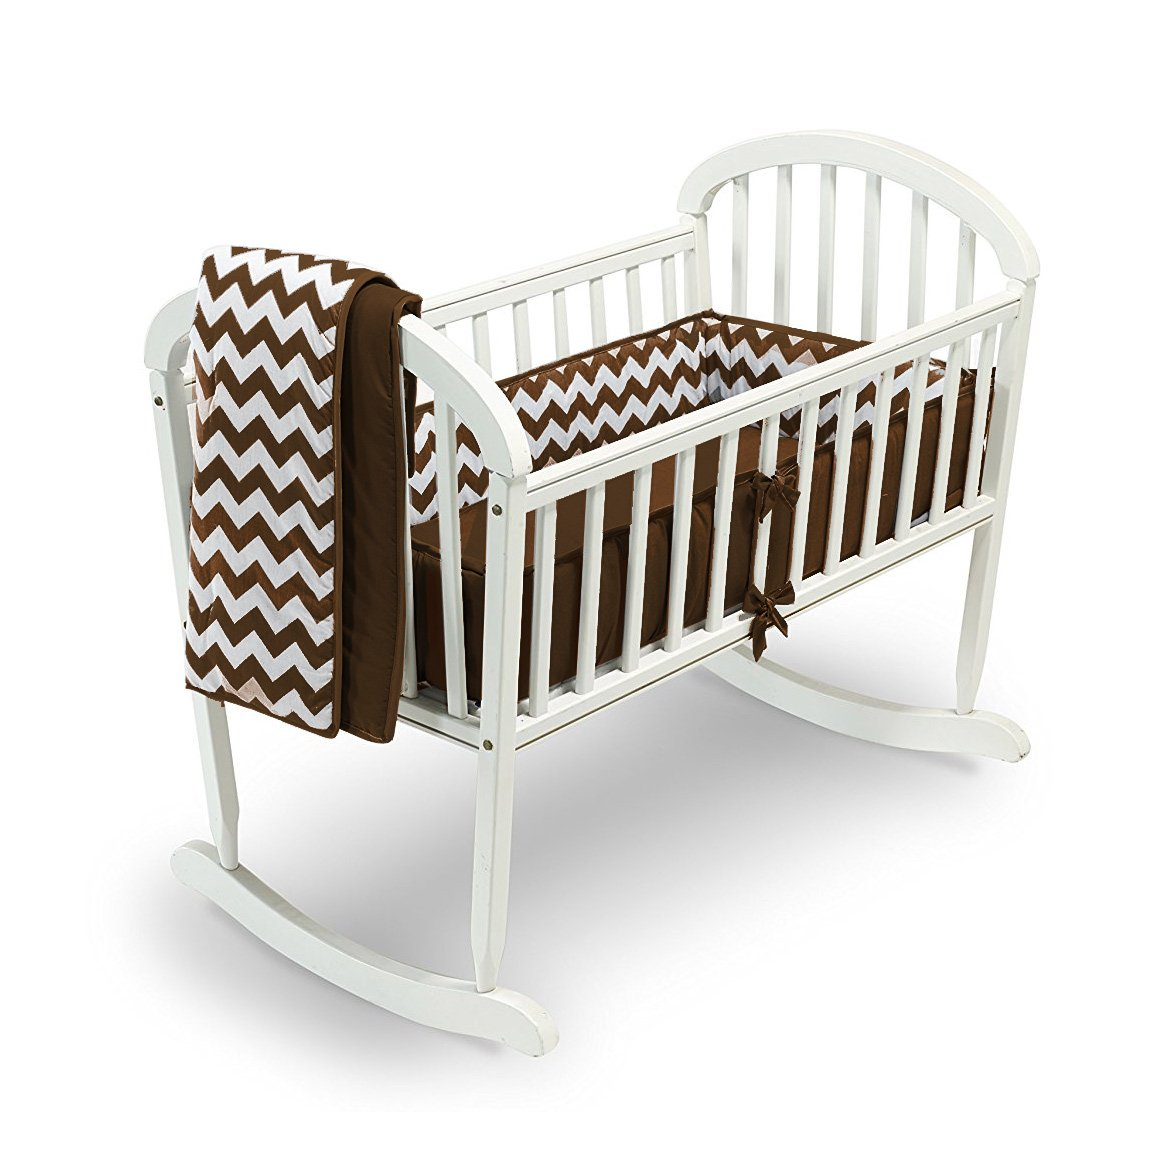 Chevron Cradle Bedding - Color: Grey, Size: 15x33 Baby Doll